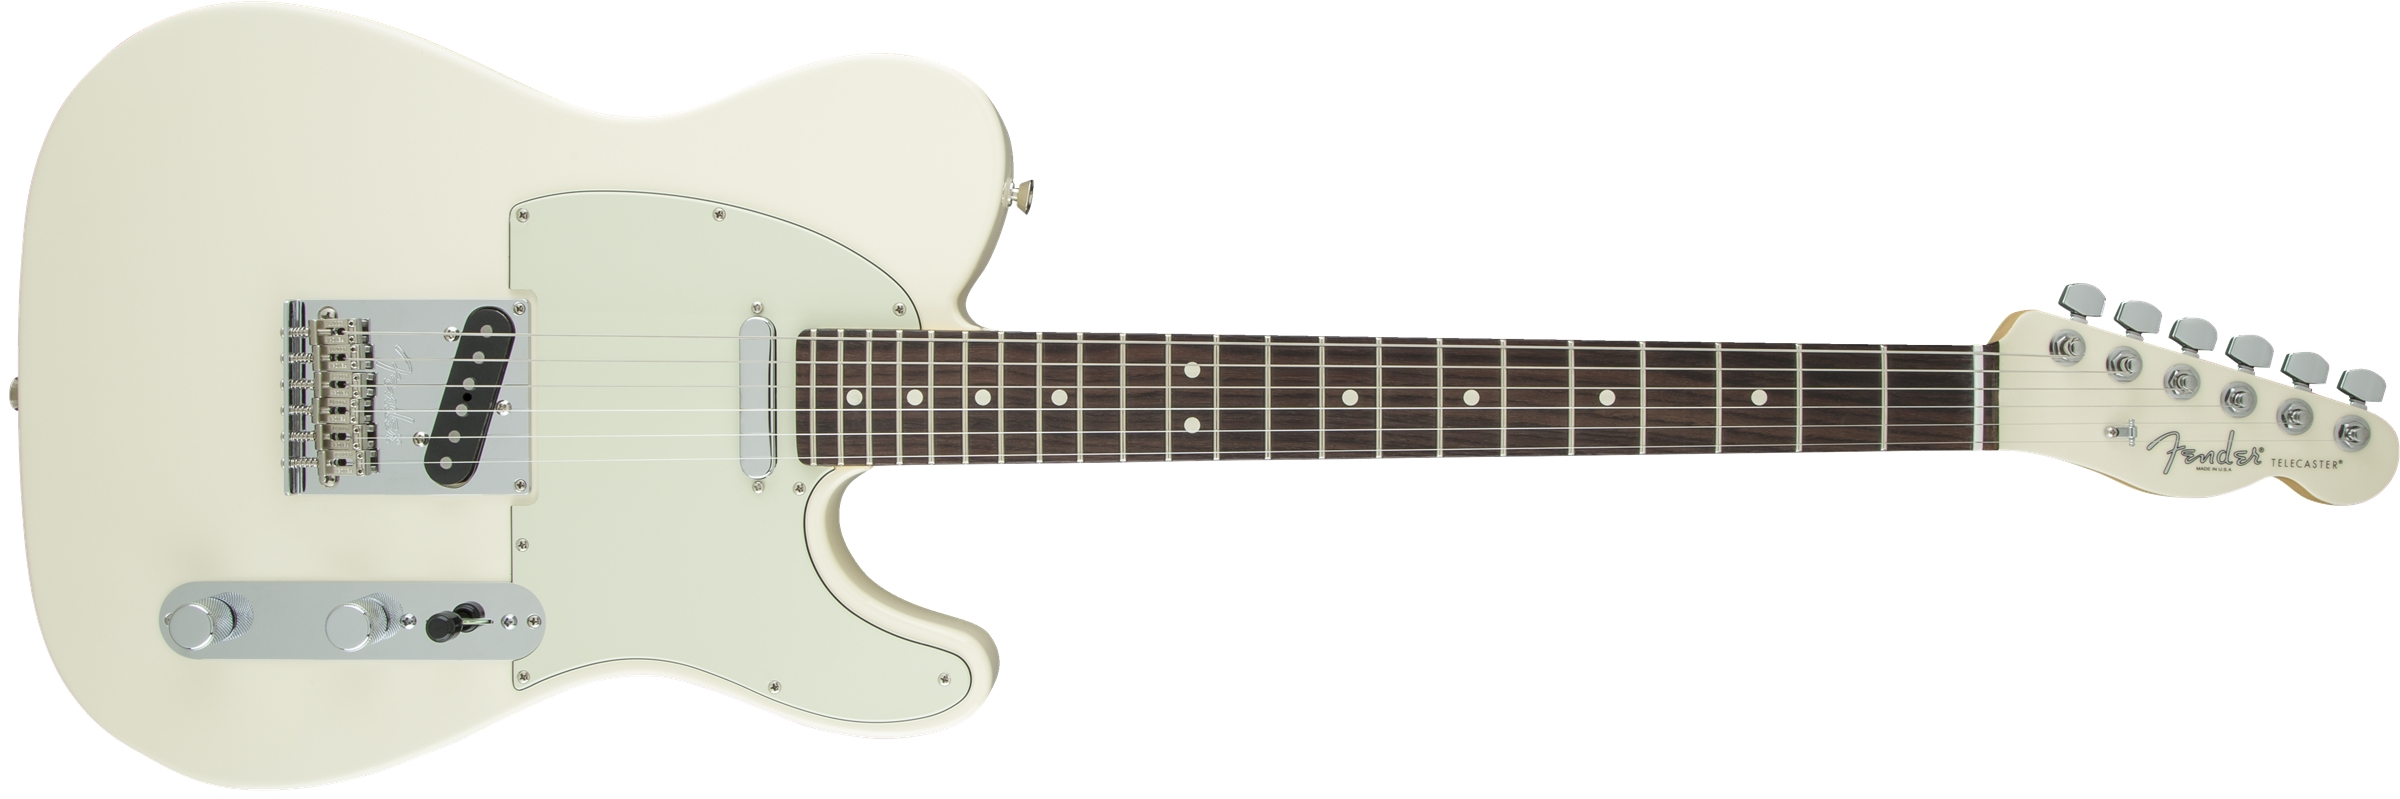 Telecaster With Matching Headstock Pictures To Pin On